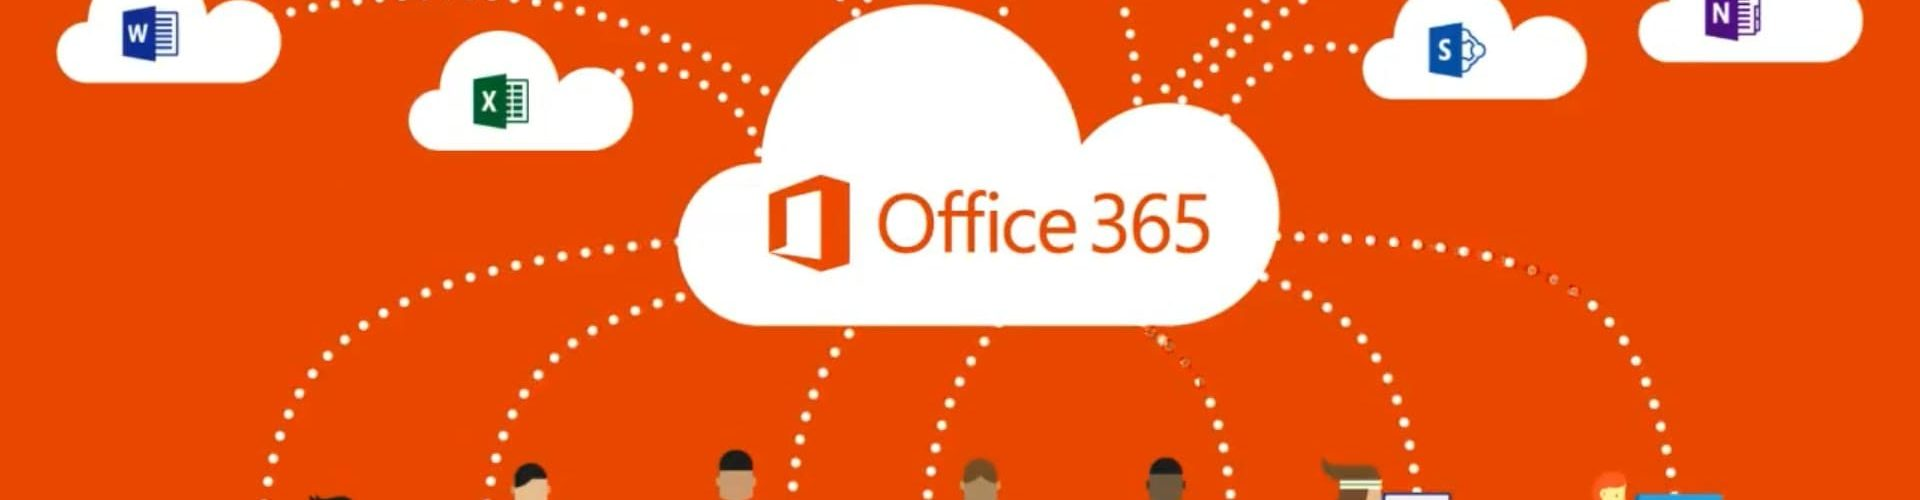 Office 365 Outlook Auto Discover Problemi